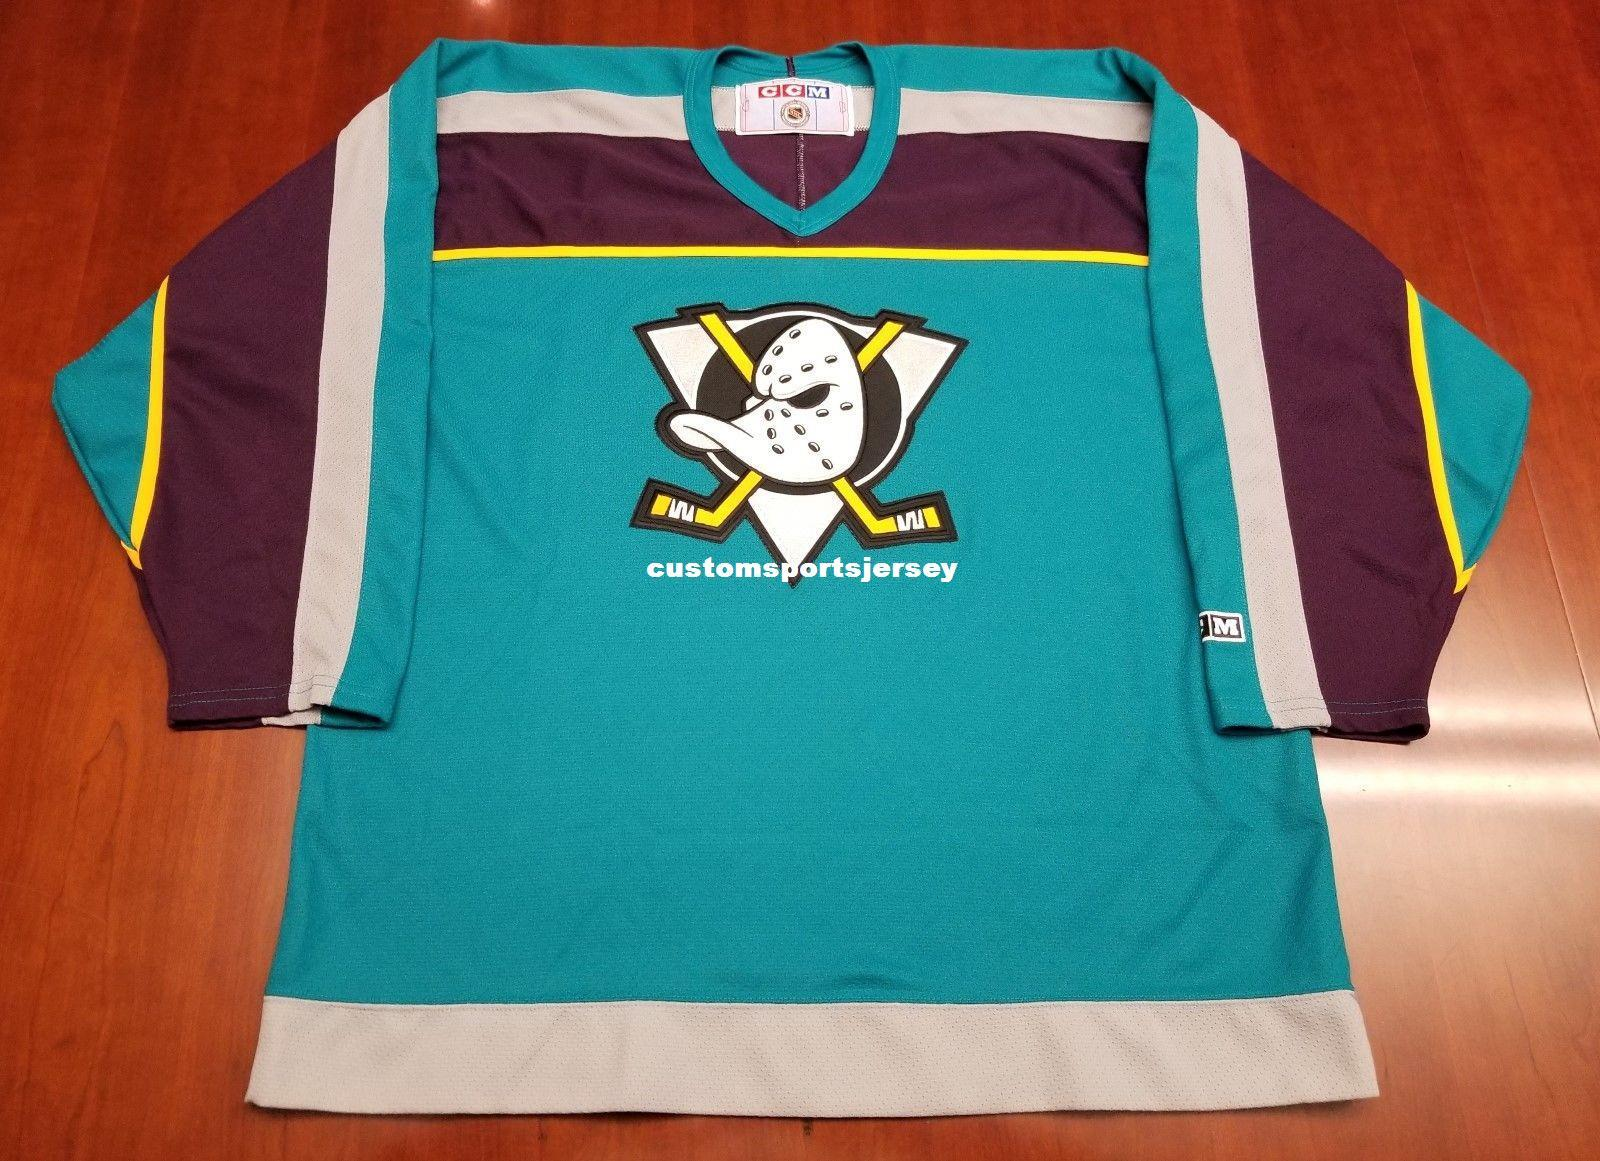 7487e9152f9 2019 Cheap Custom Anaheim Mighty Ducks Vintage CCM Retro Jersey 97 99 Teal  Stitched Retro Hockey Jersey Customize Any Name Number XS 5XL From ...